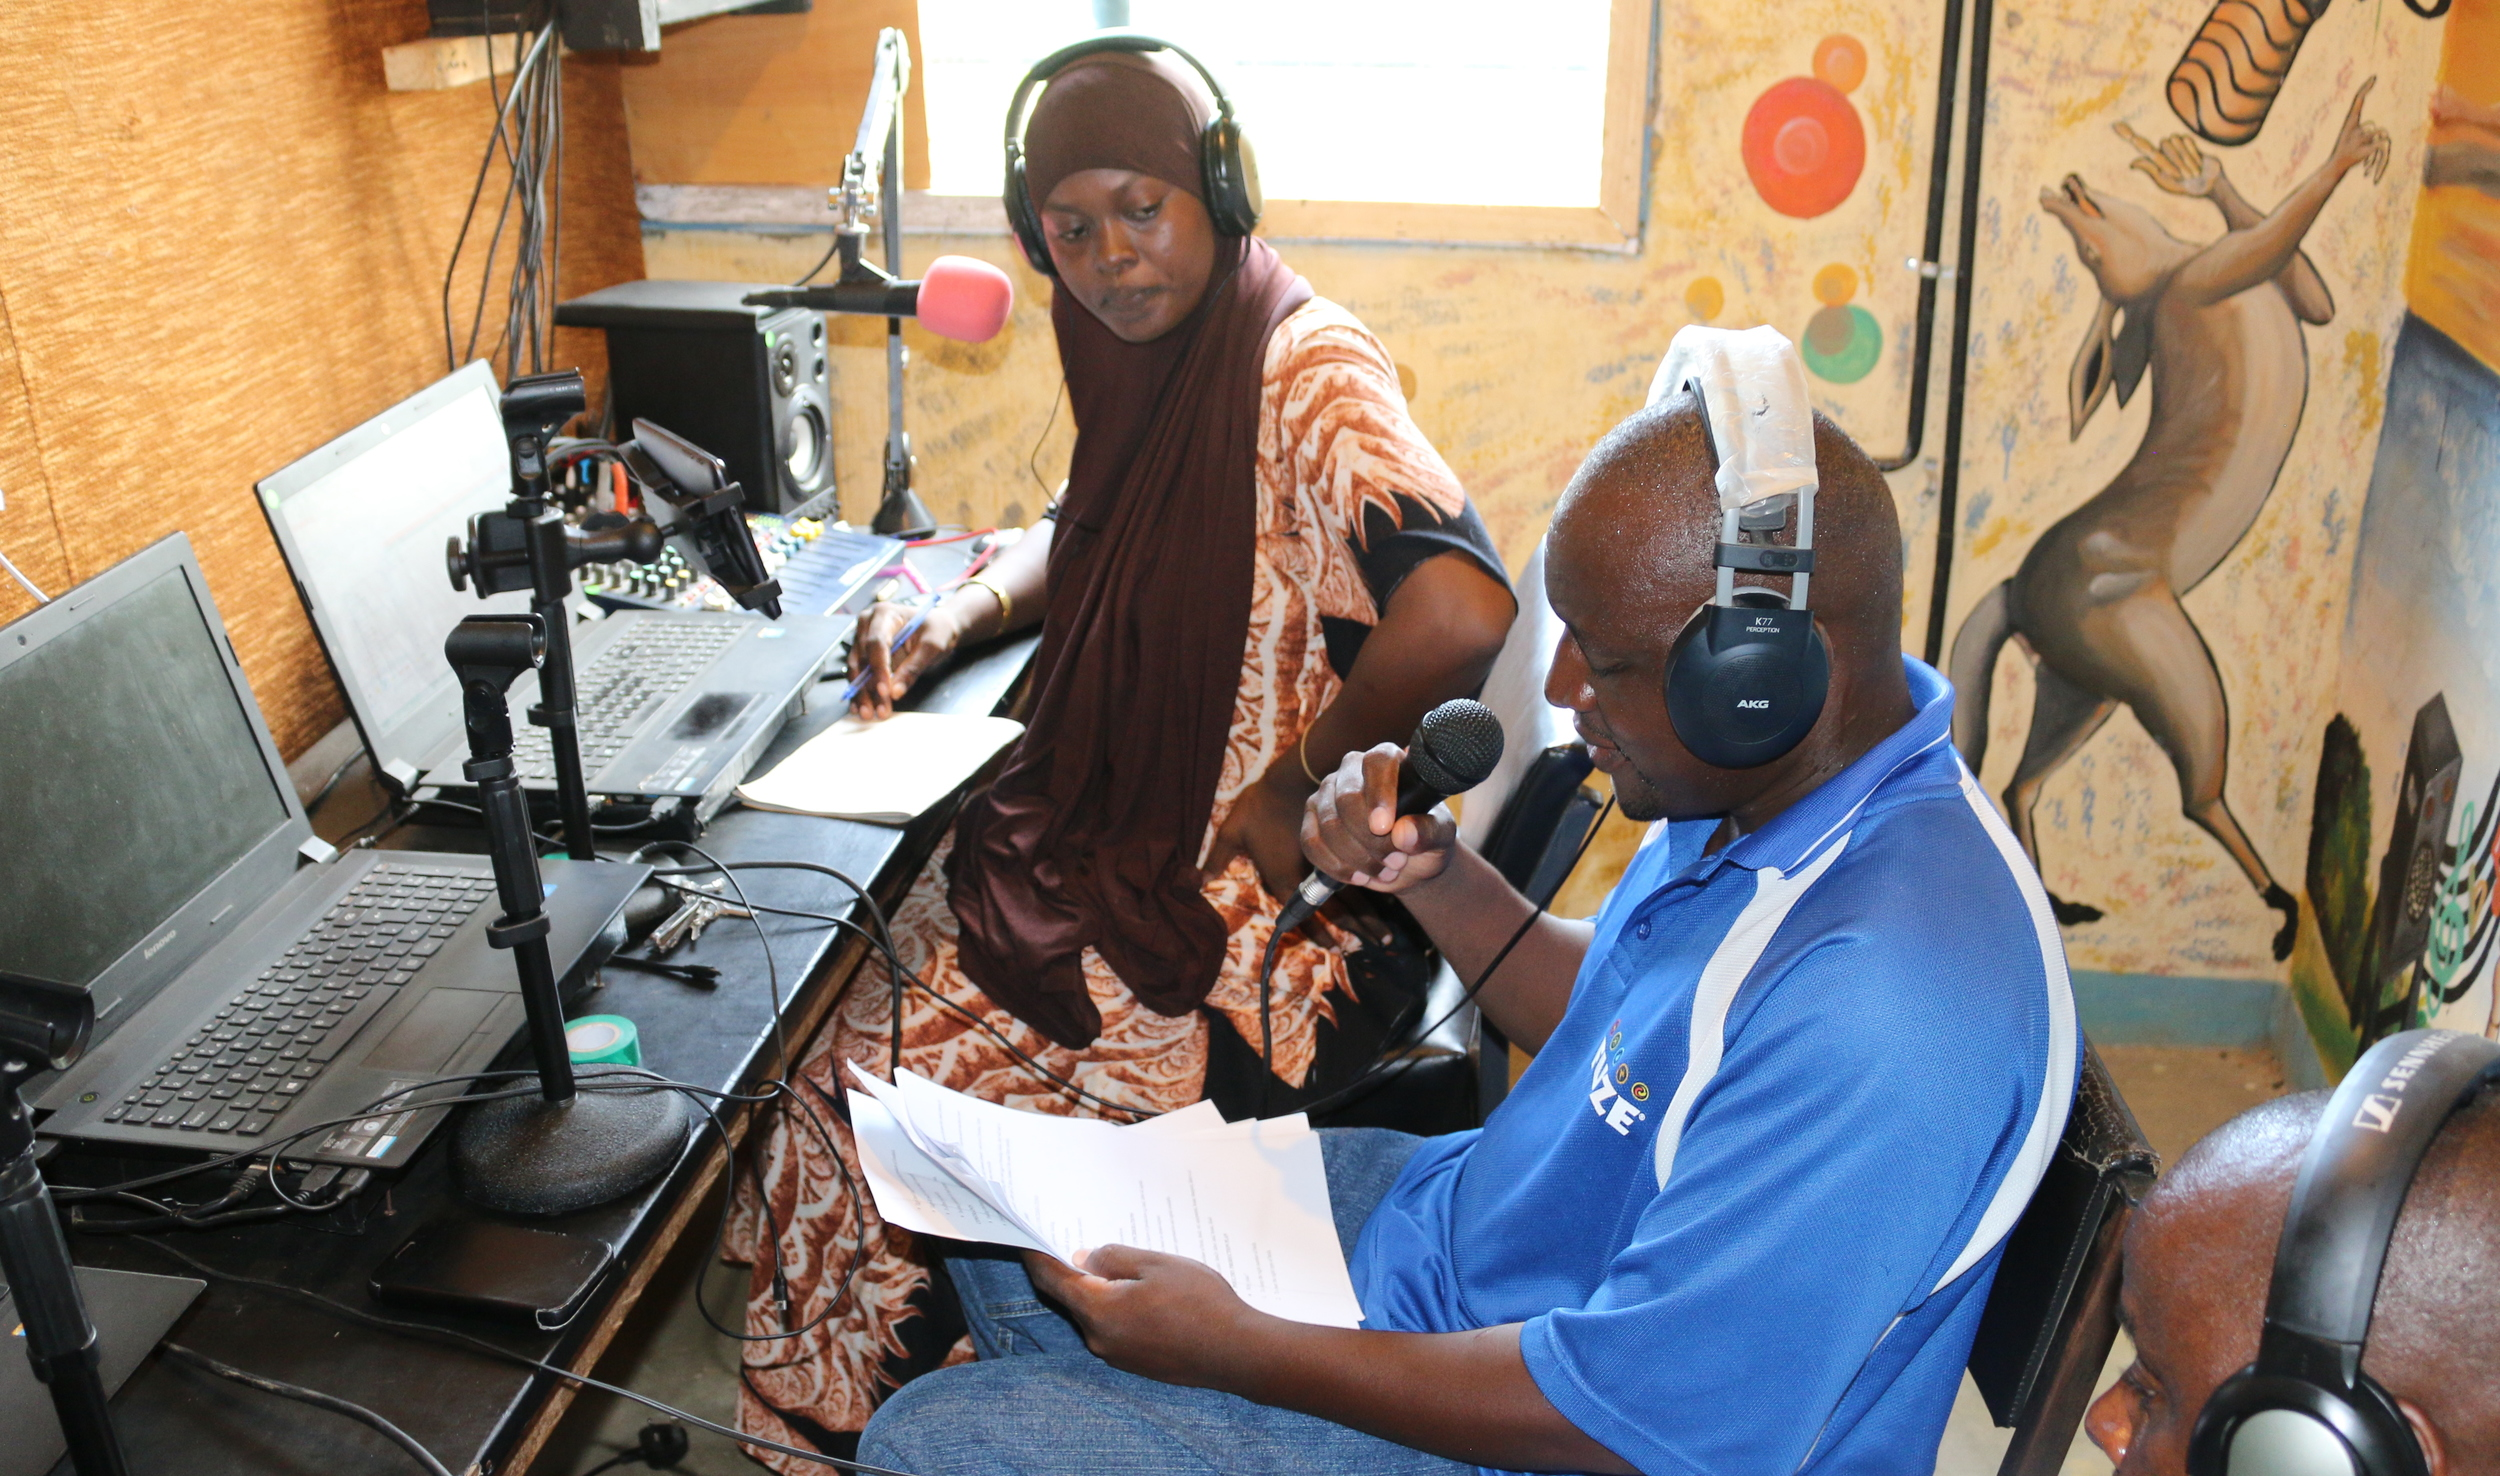 Tana FM began test broadcasts from Hola, Capital of Tana River County in May 2015